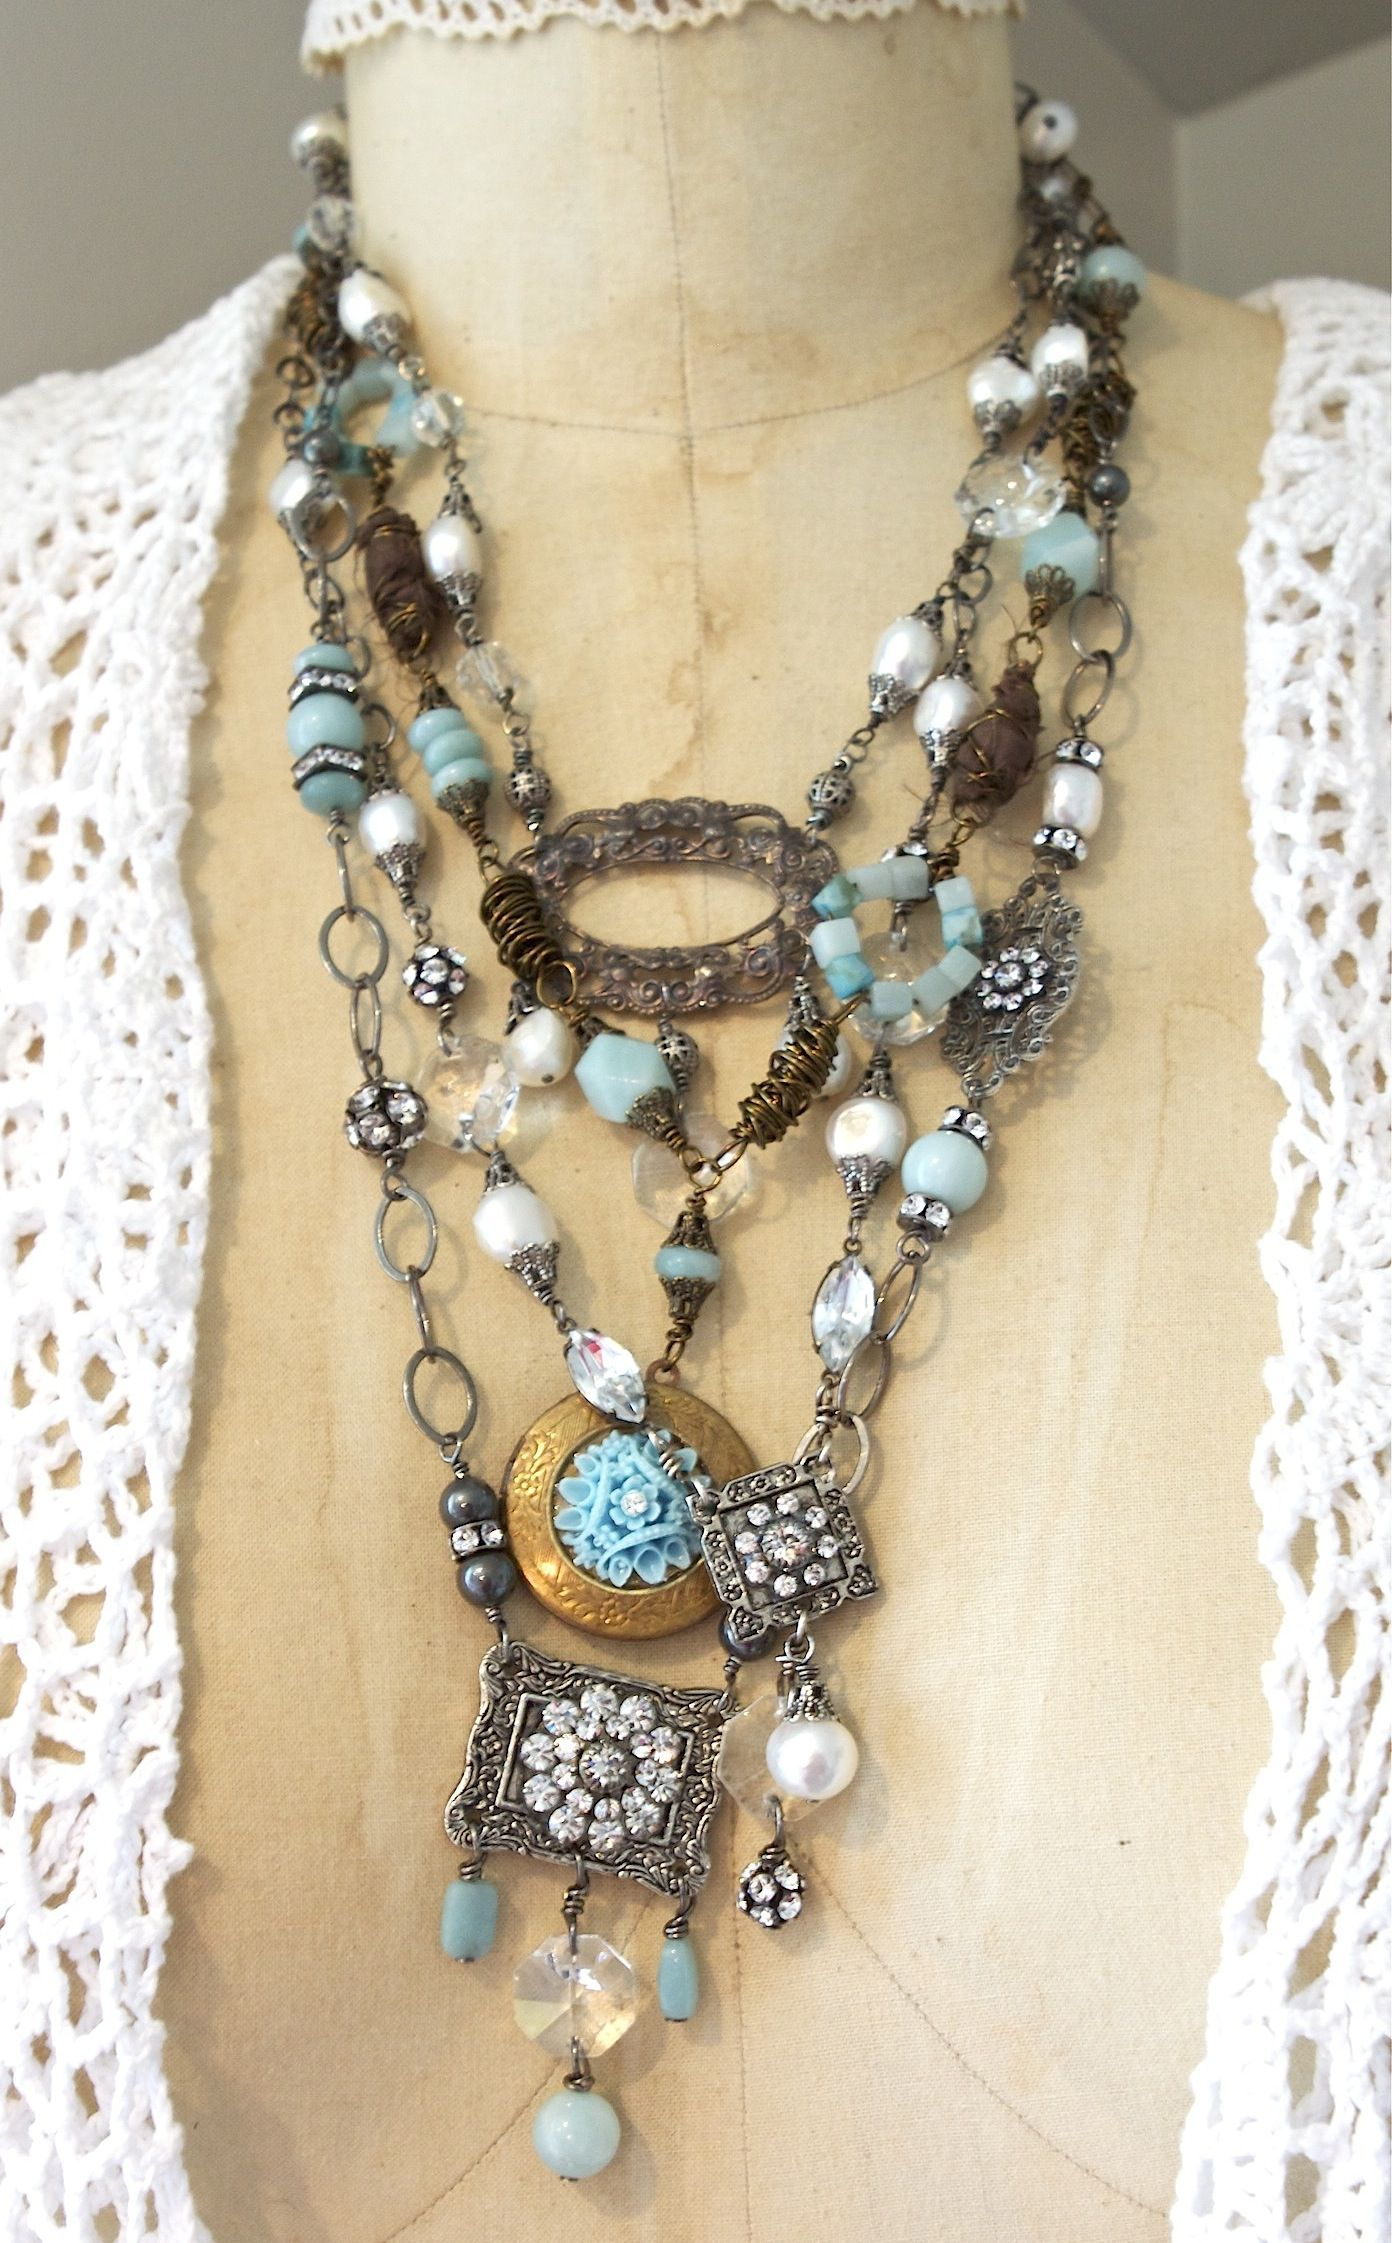 1000+ images about Repurposed Jewelry on Pinterest ...